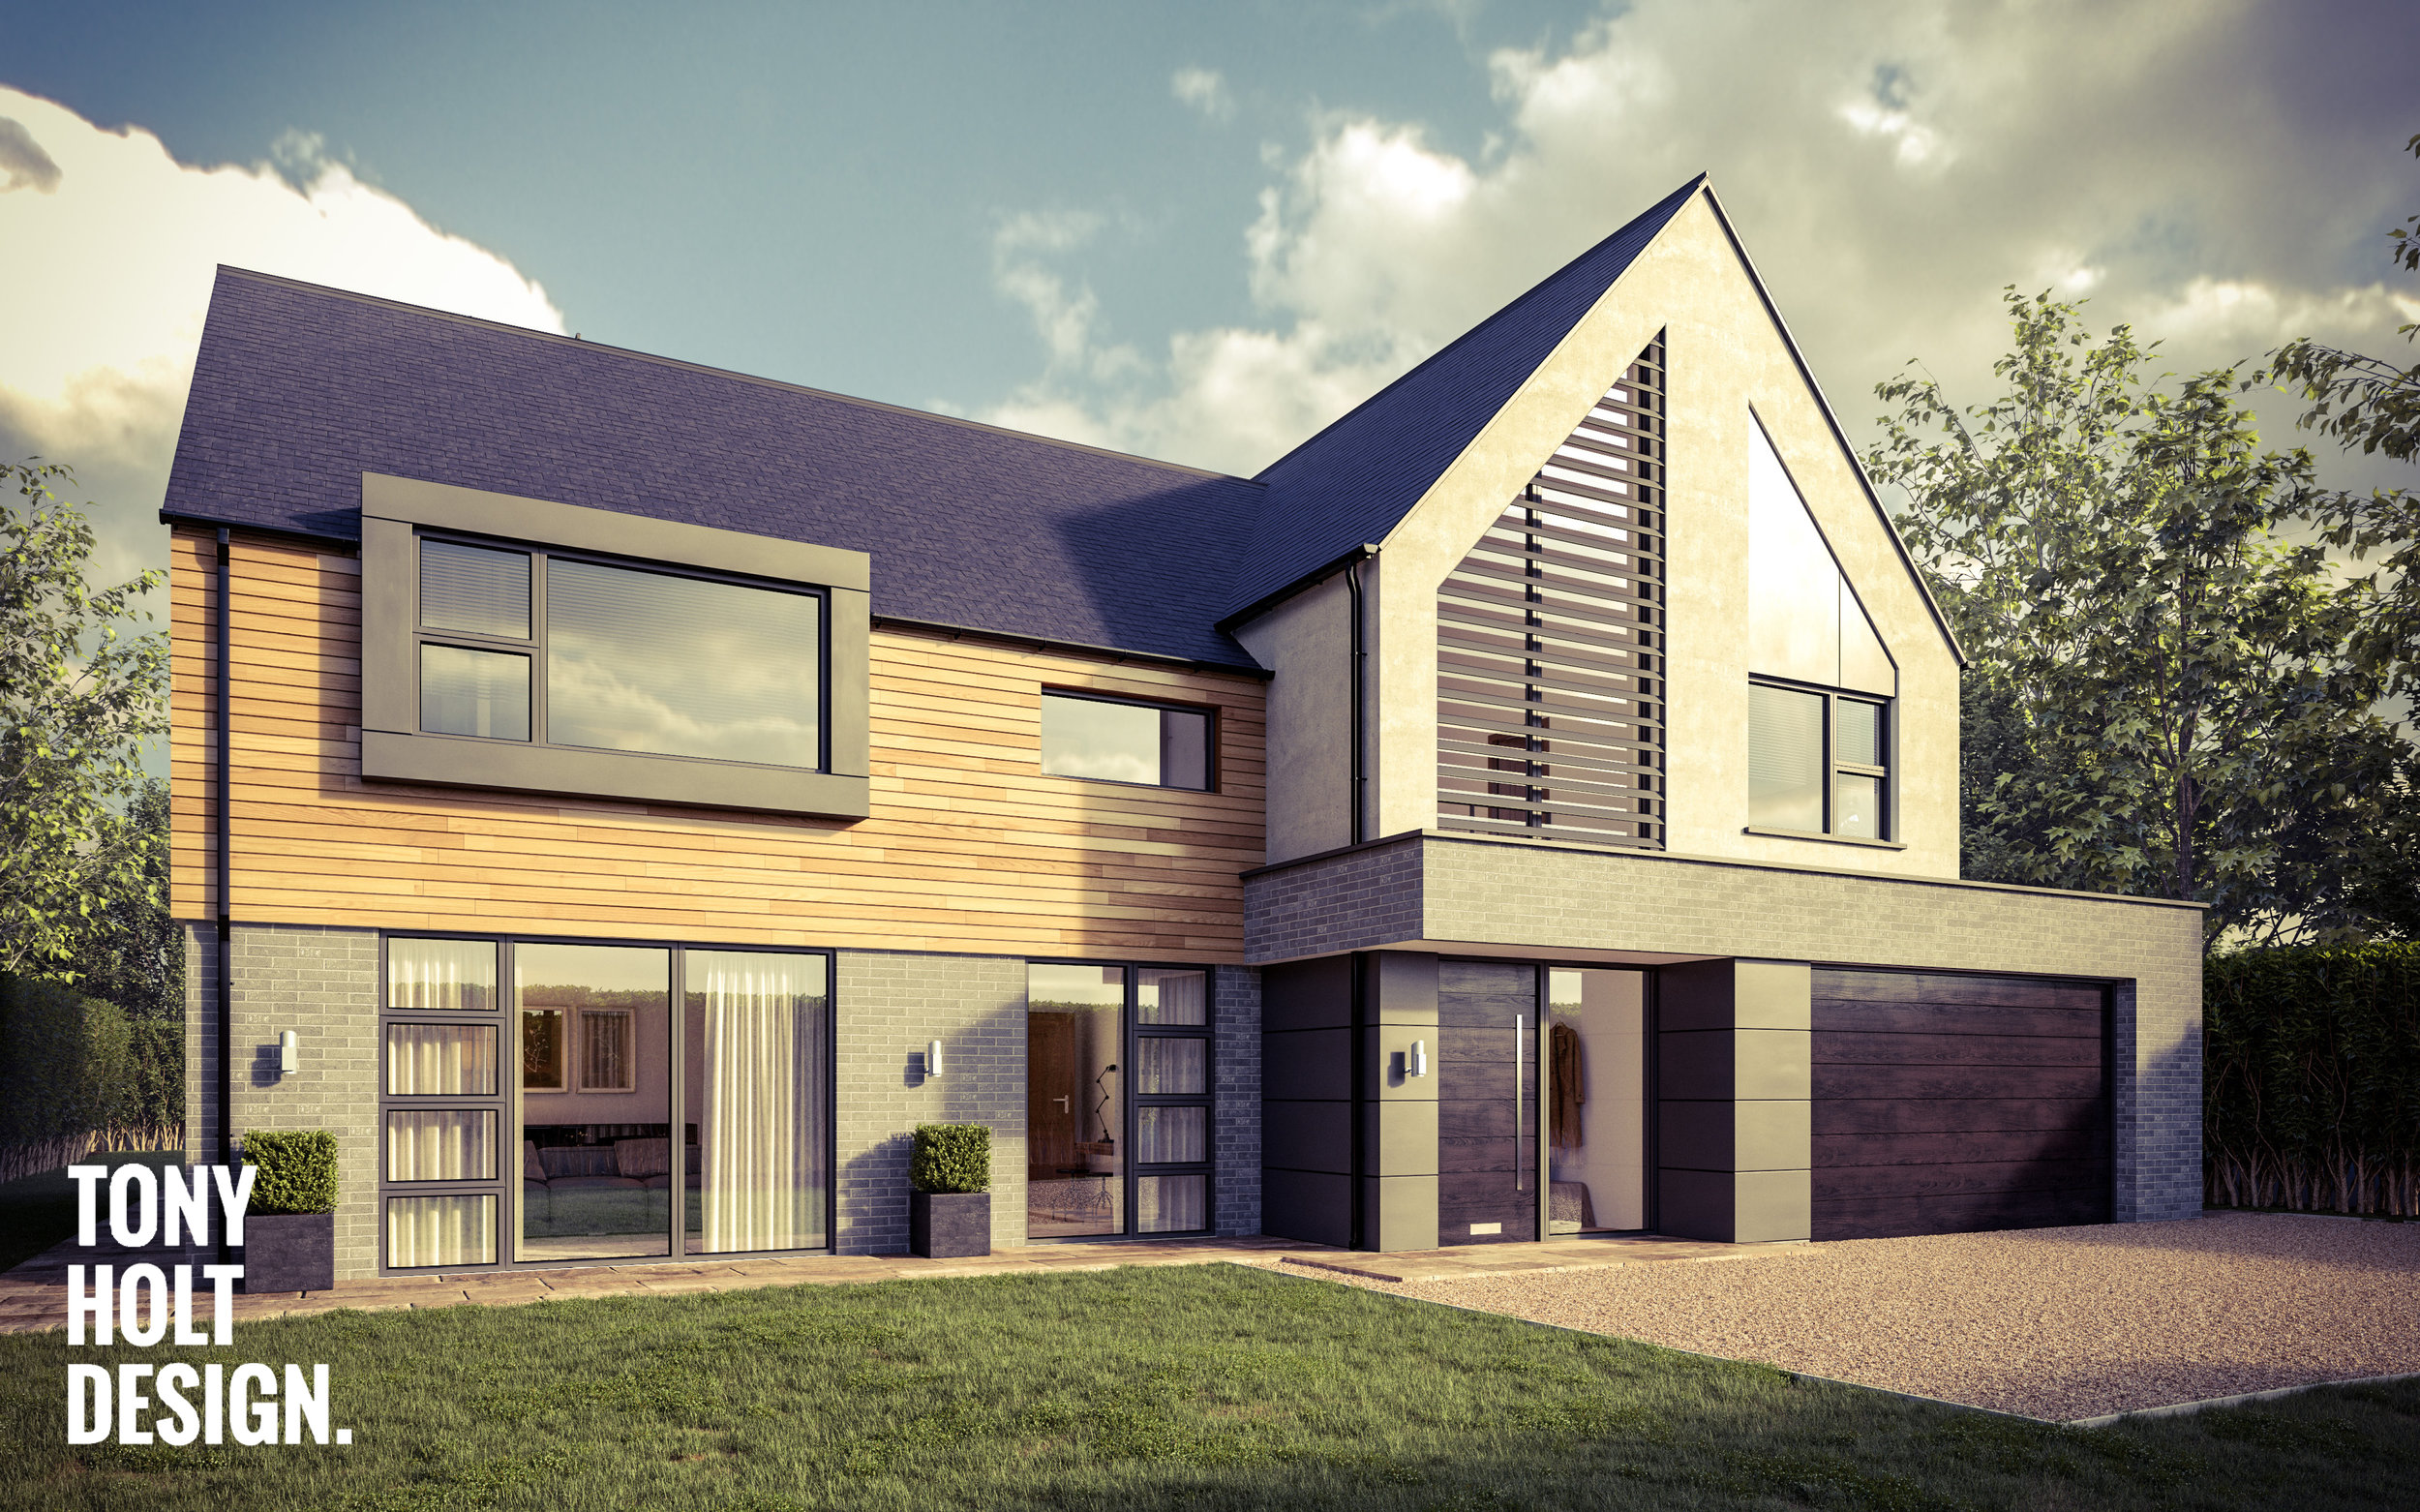 Tony Holt Design_Hunting Lodge_Self Build_New Build_Front 01_Autumn.jpg